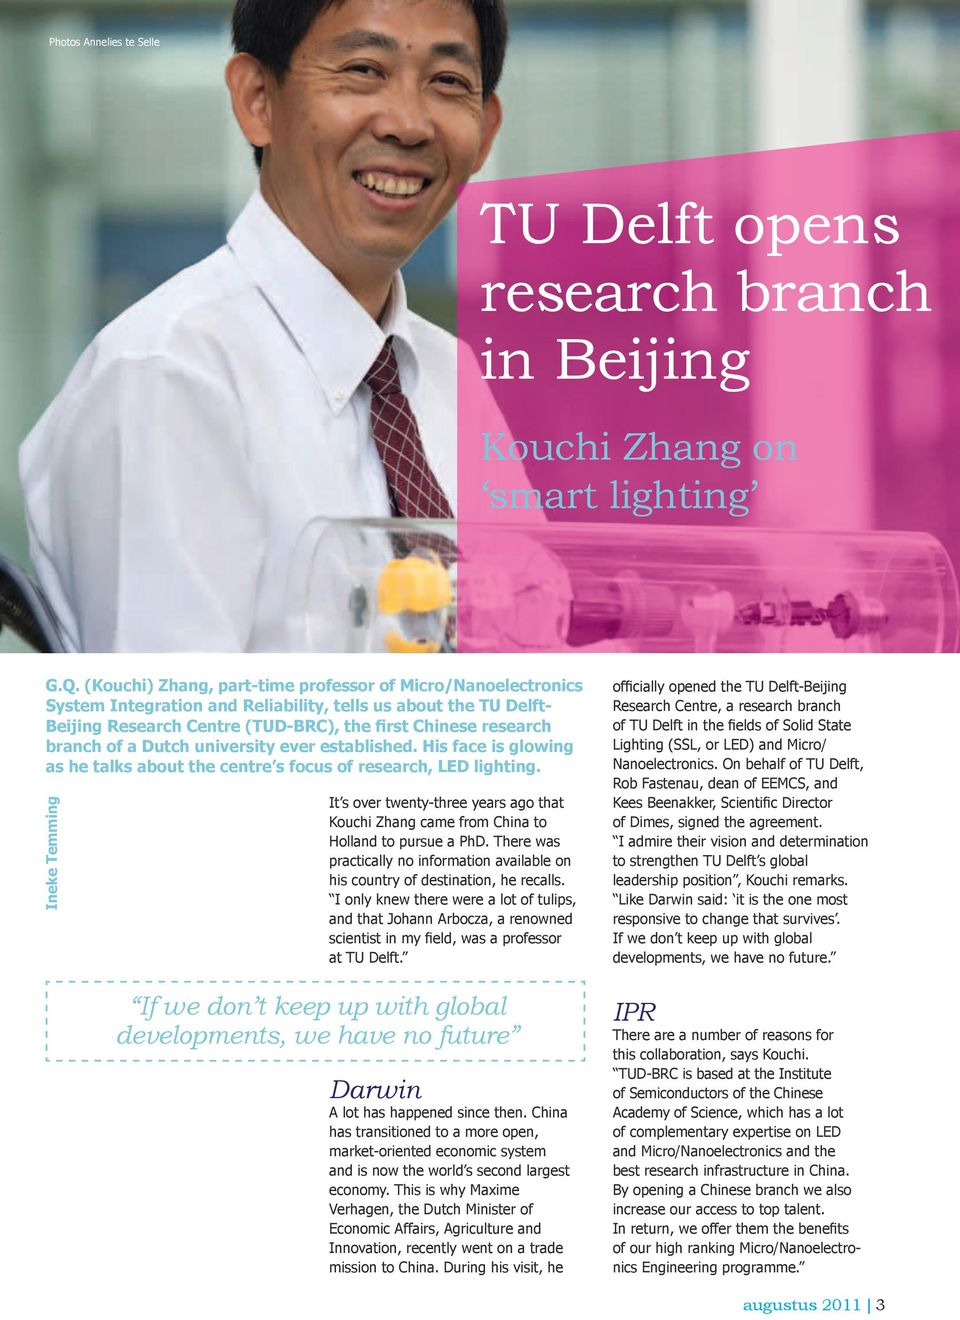 Dutch university ever established. His face is glowing as he talks about the centre s focus of research, LED lighting.